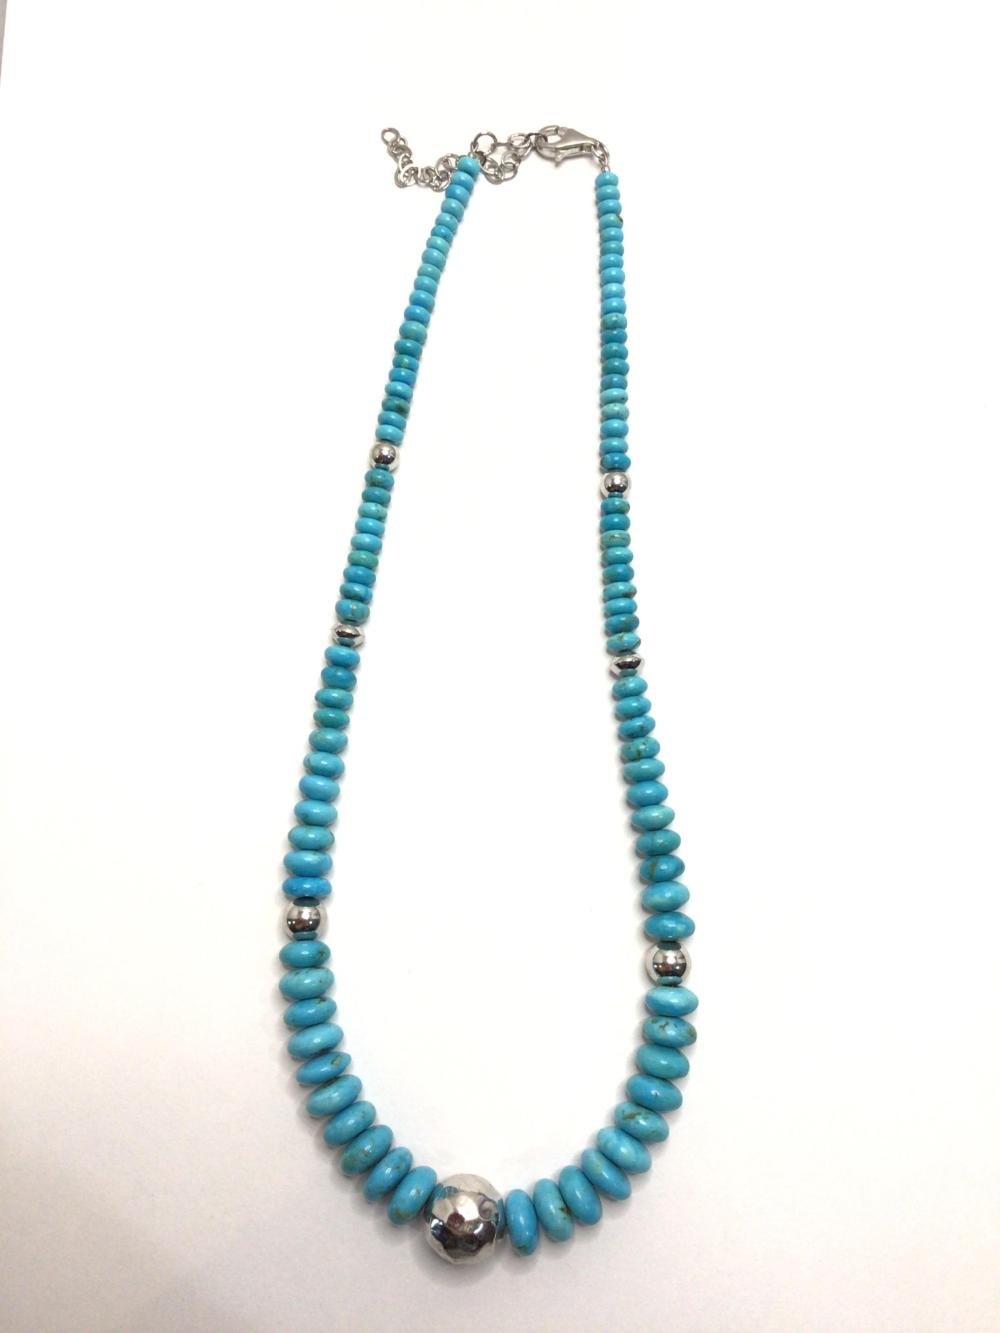 A: Handmade Beaded Turquoise Necklace